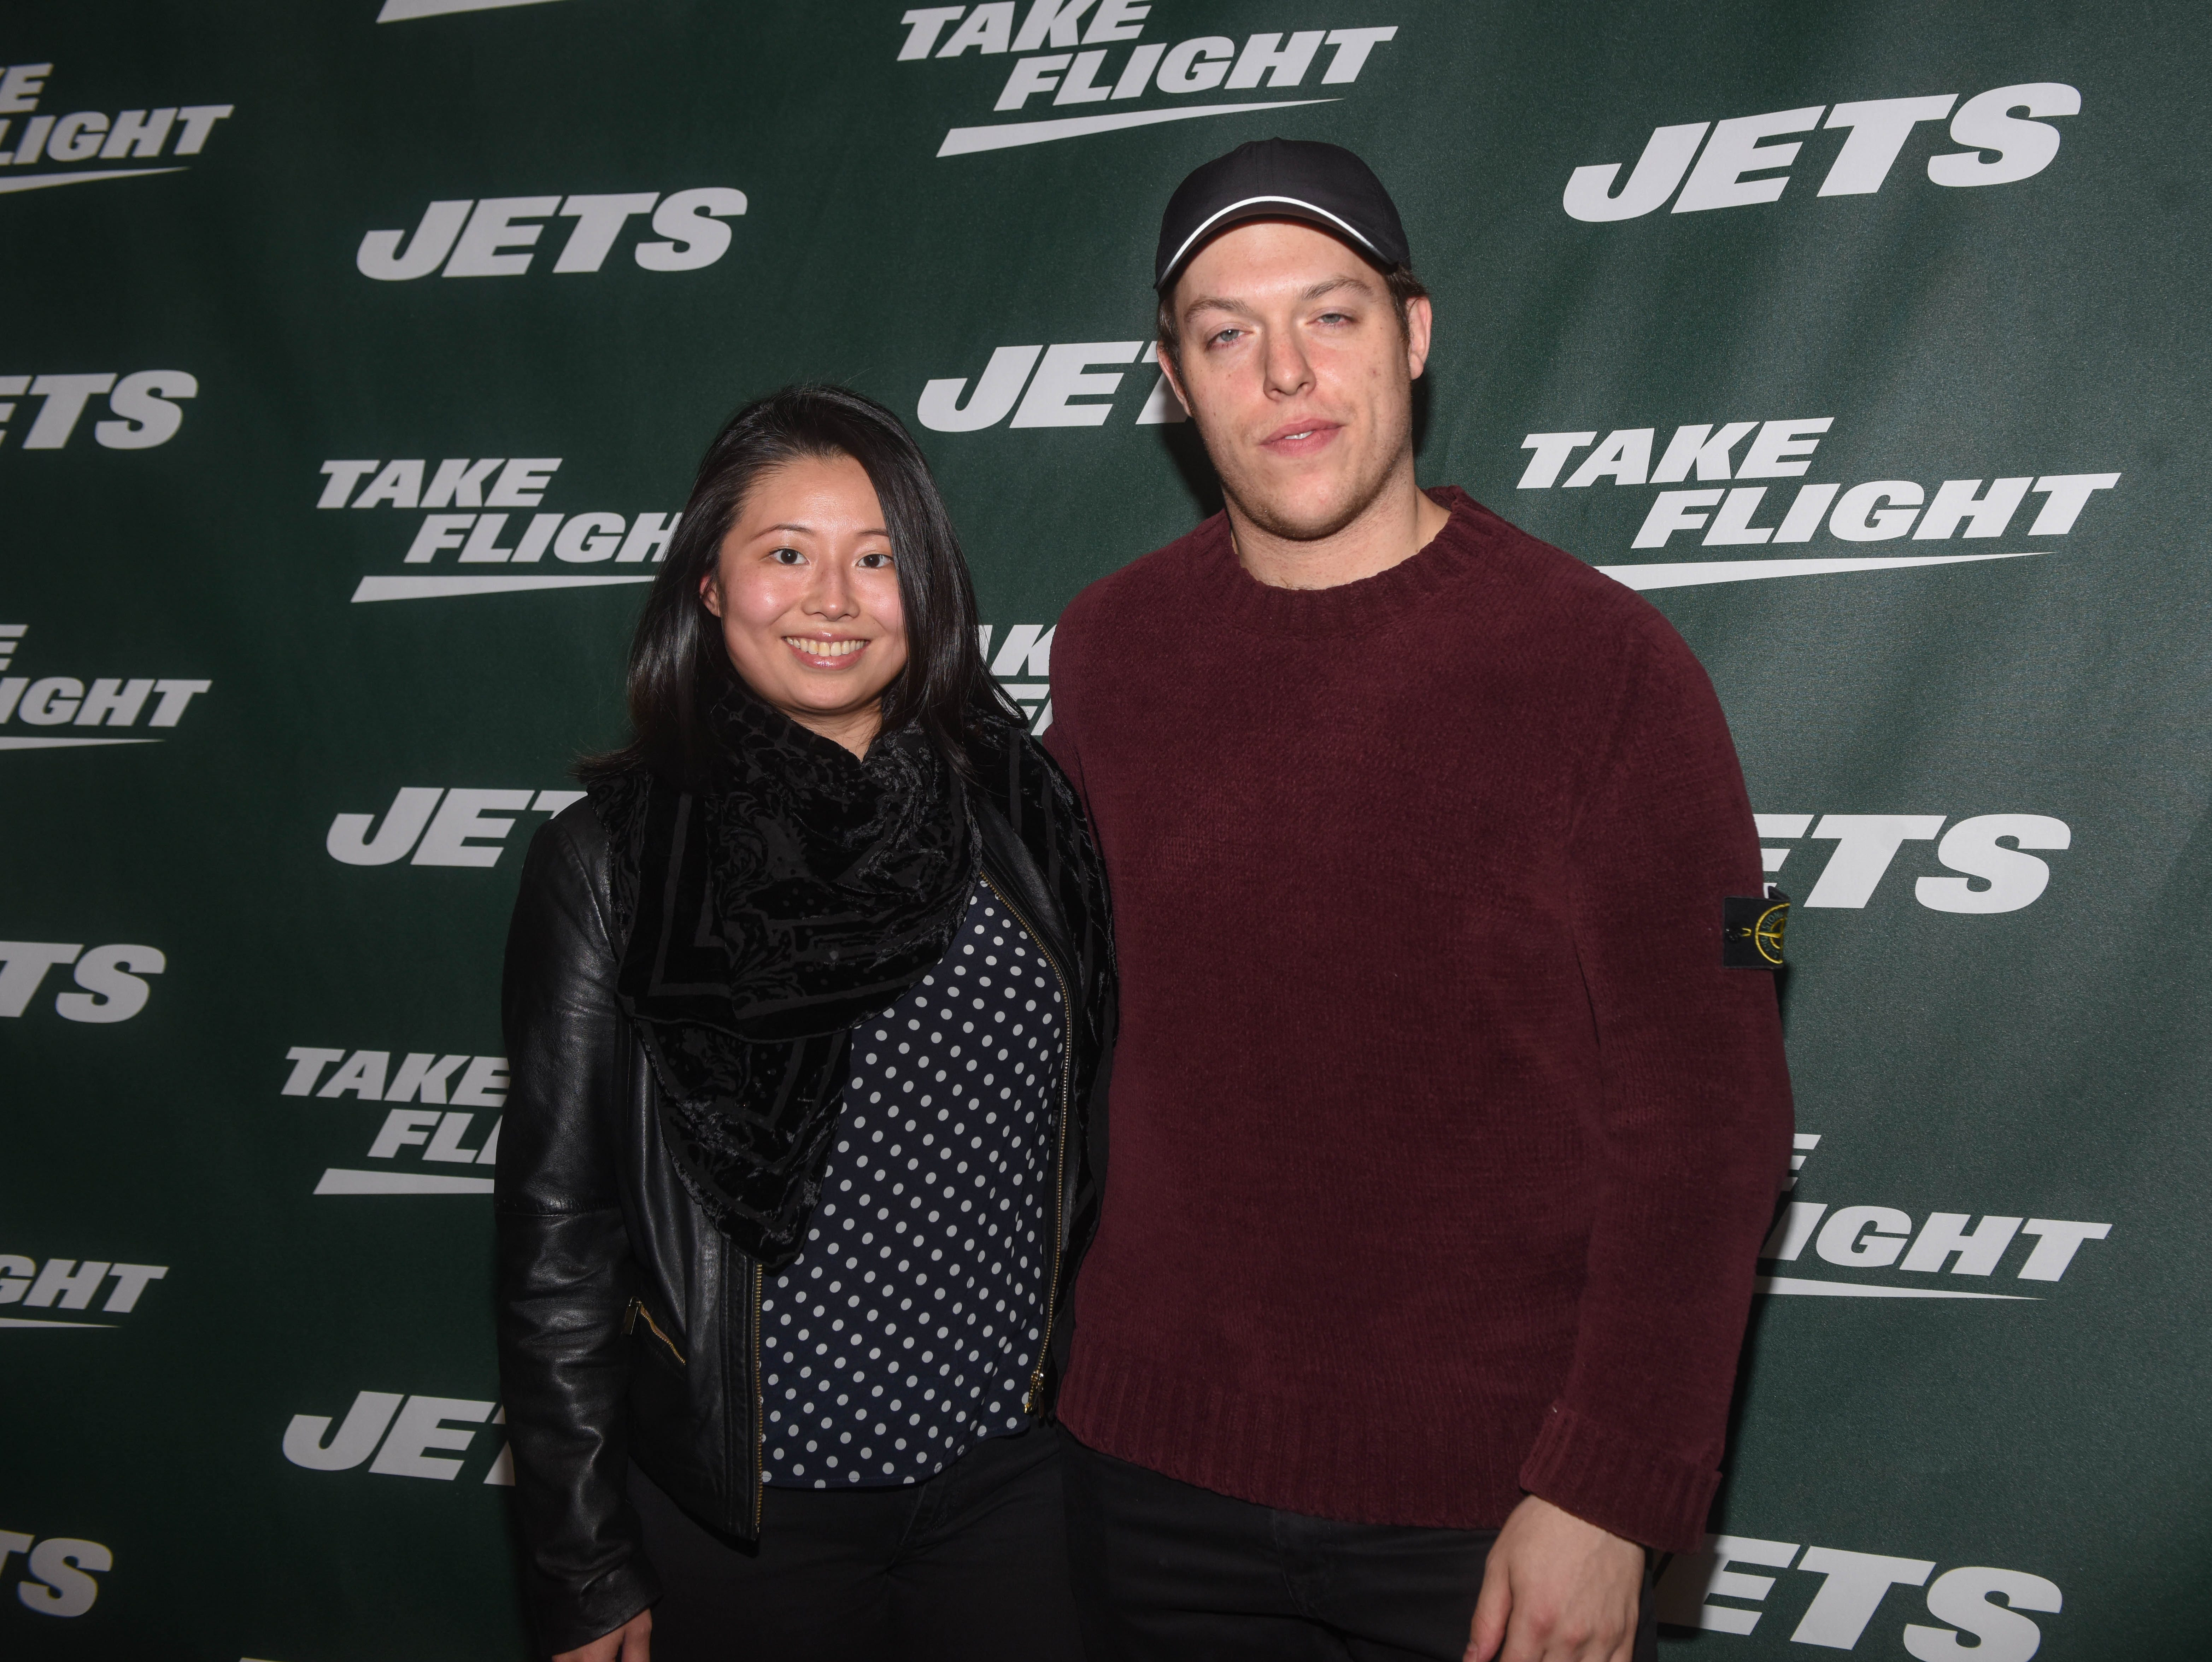 Connor Seltz and guest. The NY Jets unveiled their new football uniforms with an event hosted by JB Smoove at Gotham Hall in New York. 04/05/2019